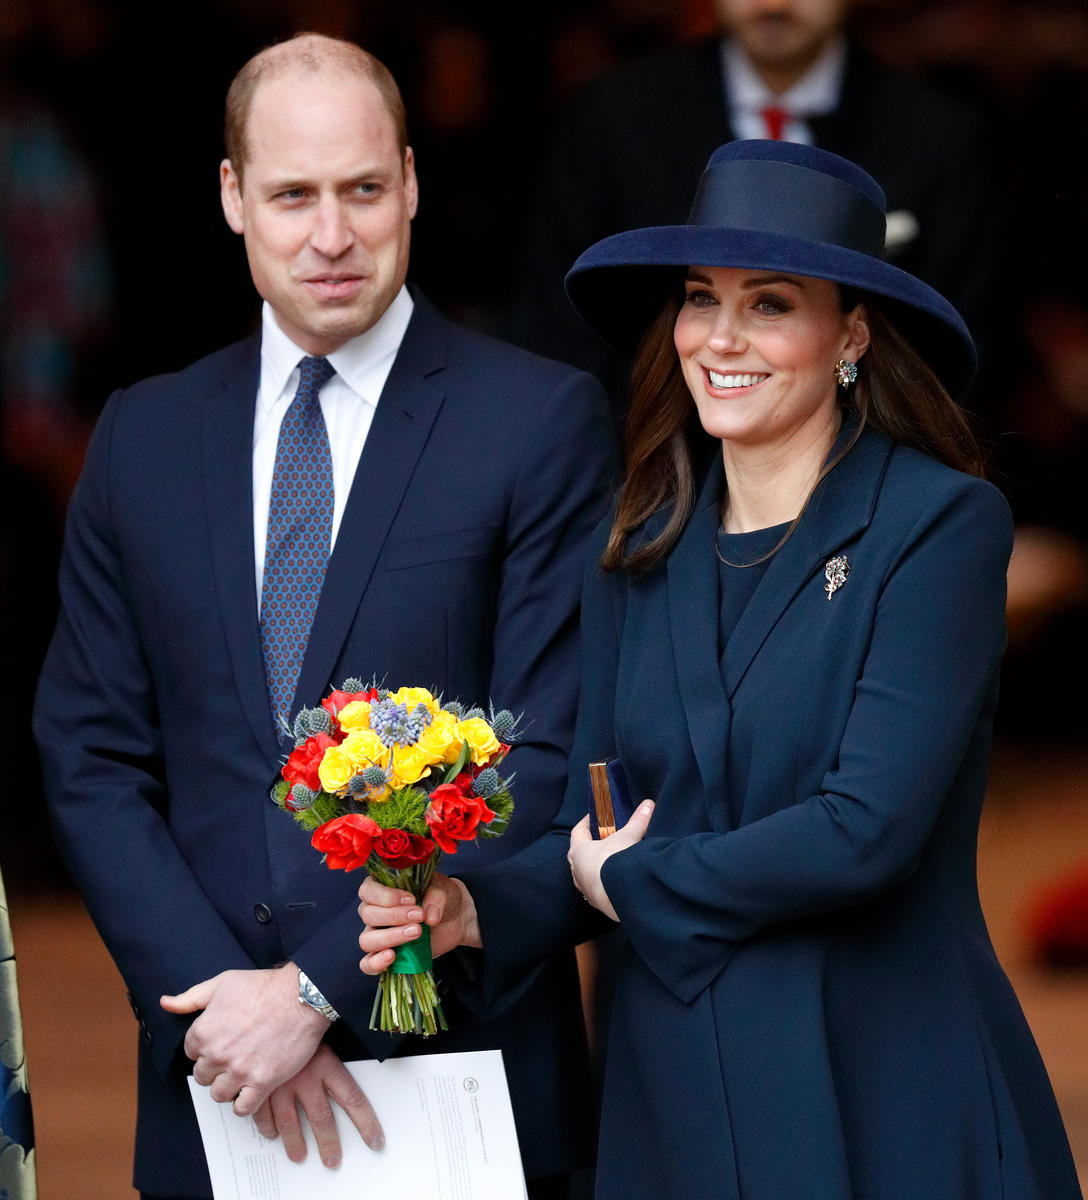 Prince William May or May Not Have Accidentally Revealed the Gender of Royal Baby No. 3